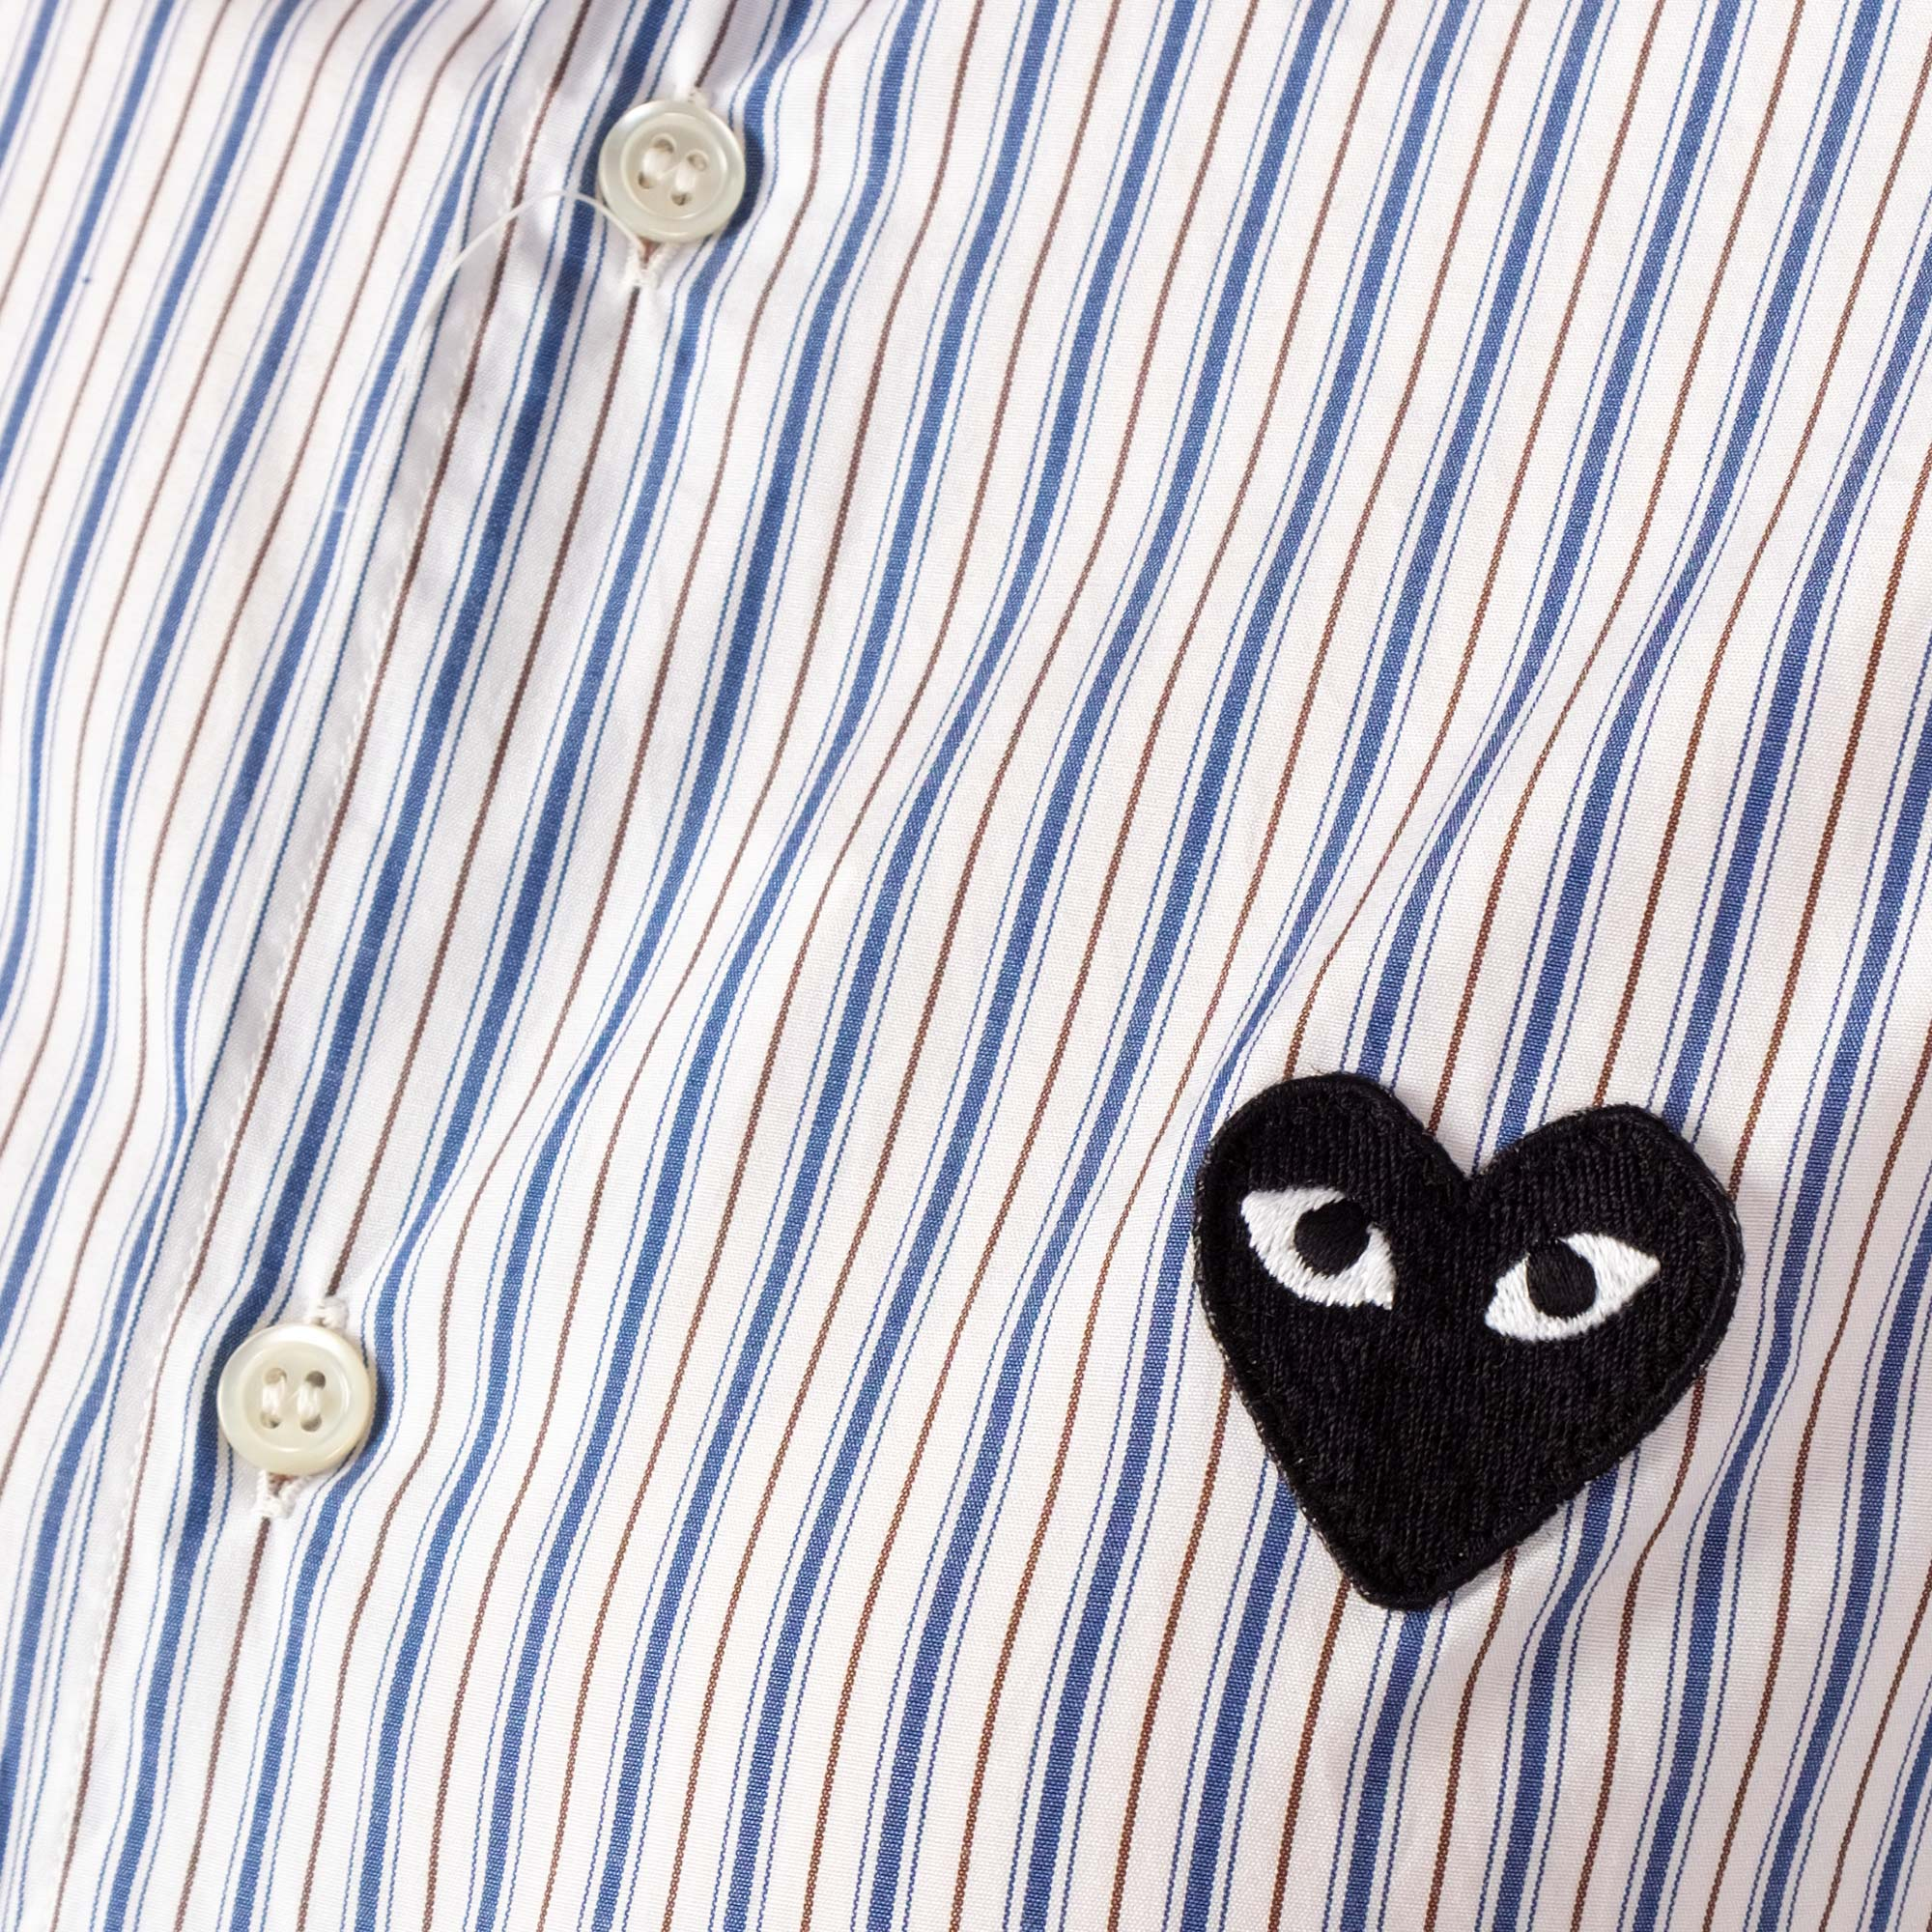 Comme des Garçons - PLAY Black Emblem Stripe Womens Shirt - White / Navy 2